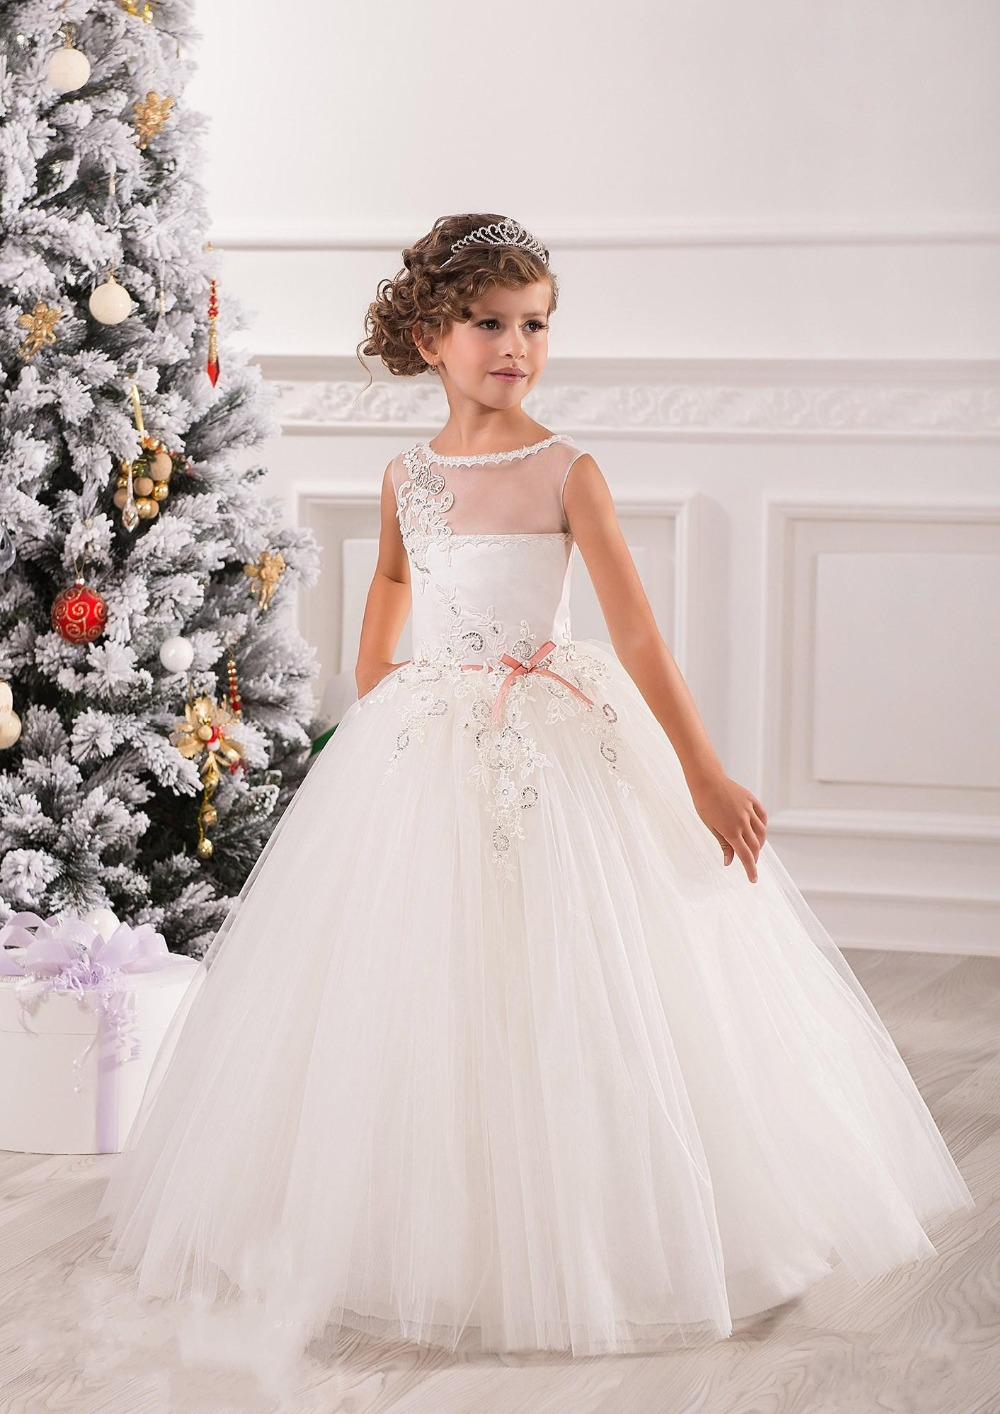 Elegant white lace ball gowns tulle flower girl dresses for Wedding dresses for young girls